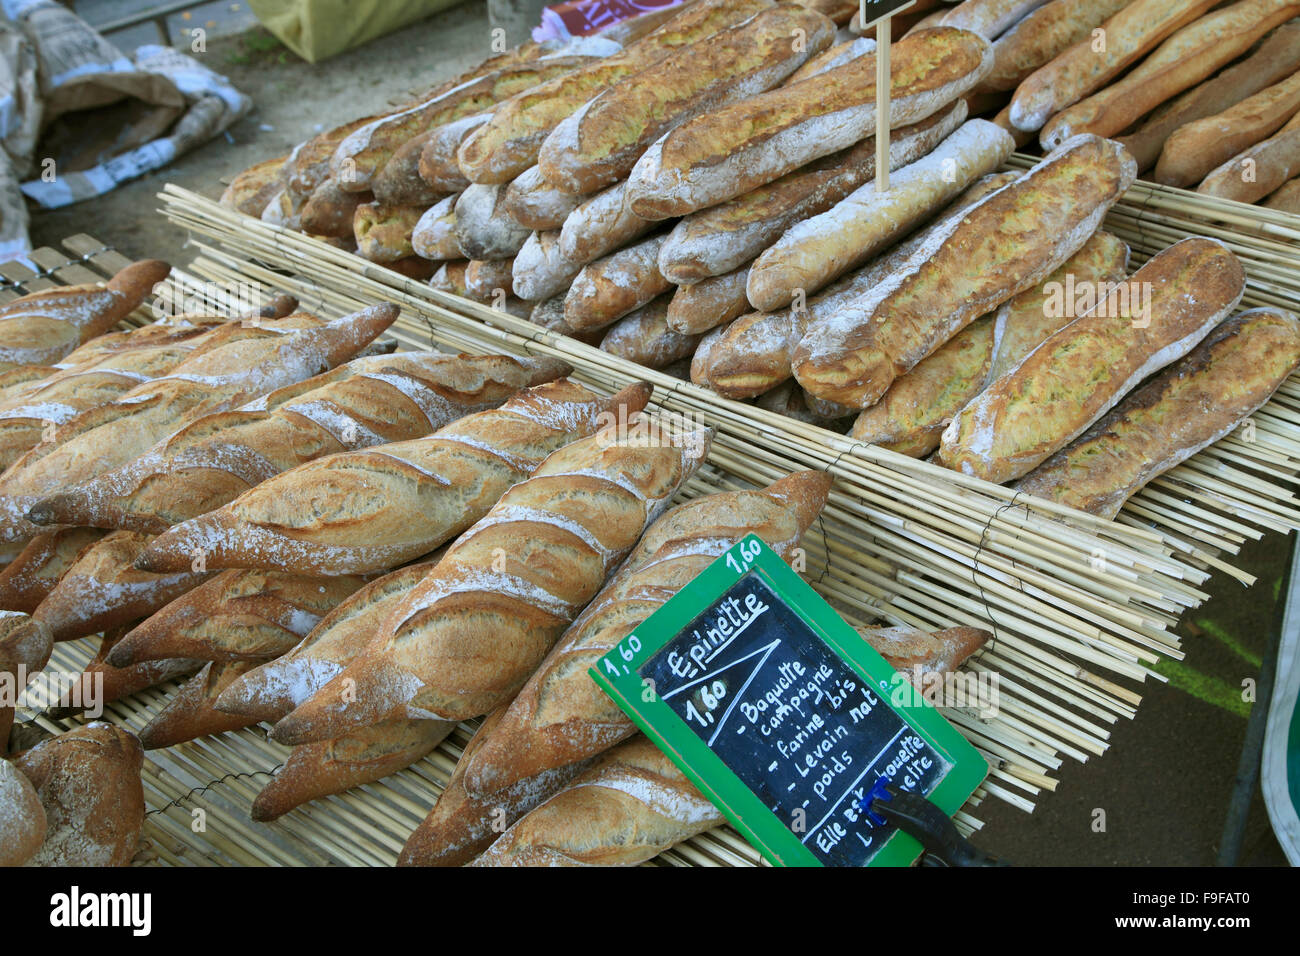 Lyon market stock photos lyon market stock images alamy for Stock cuisine lyon